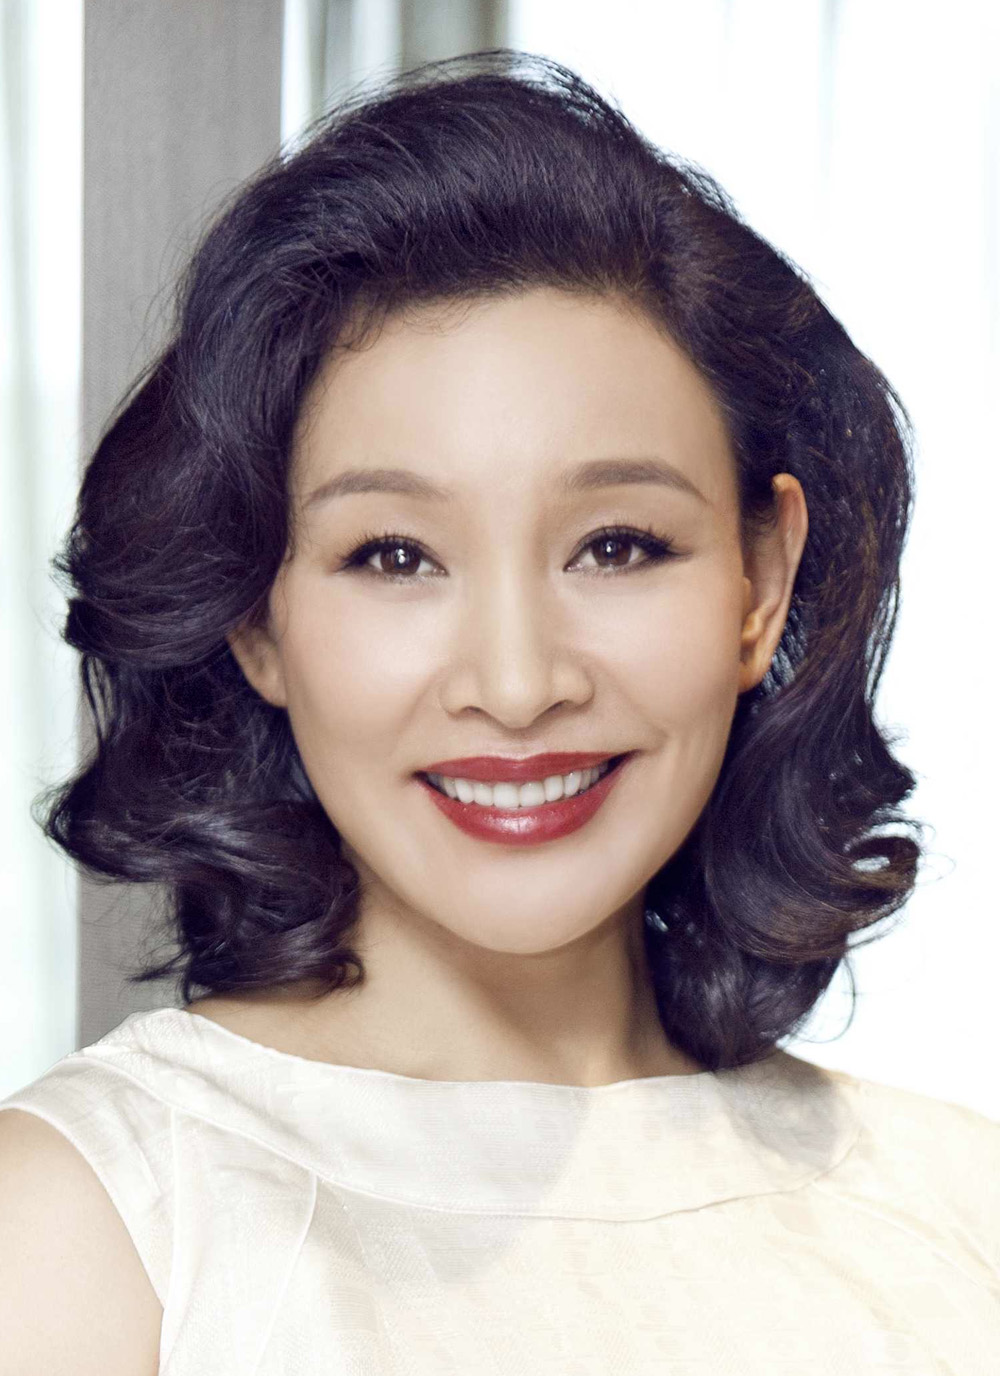 joan chen 2015joan chen 2016, joan chen is sky, joan chen rutger hauer, joan chen twitter, joan chen twin peaks, joan chen marco polo, joan chen husband, joan chen, joan chen wiki, joan chen blog, joan chen 2015, joan chen last emperor, joan chen instagram, joan chen young, joan chen facebook, joan chen imdb, joan chen net worth, joan chen hot, joan chen daughters, joan chen movies and tv shows